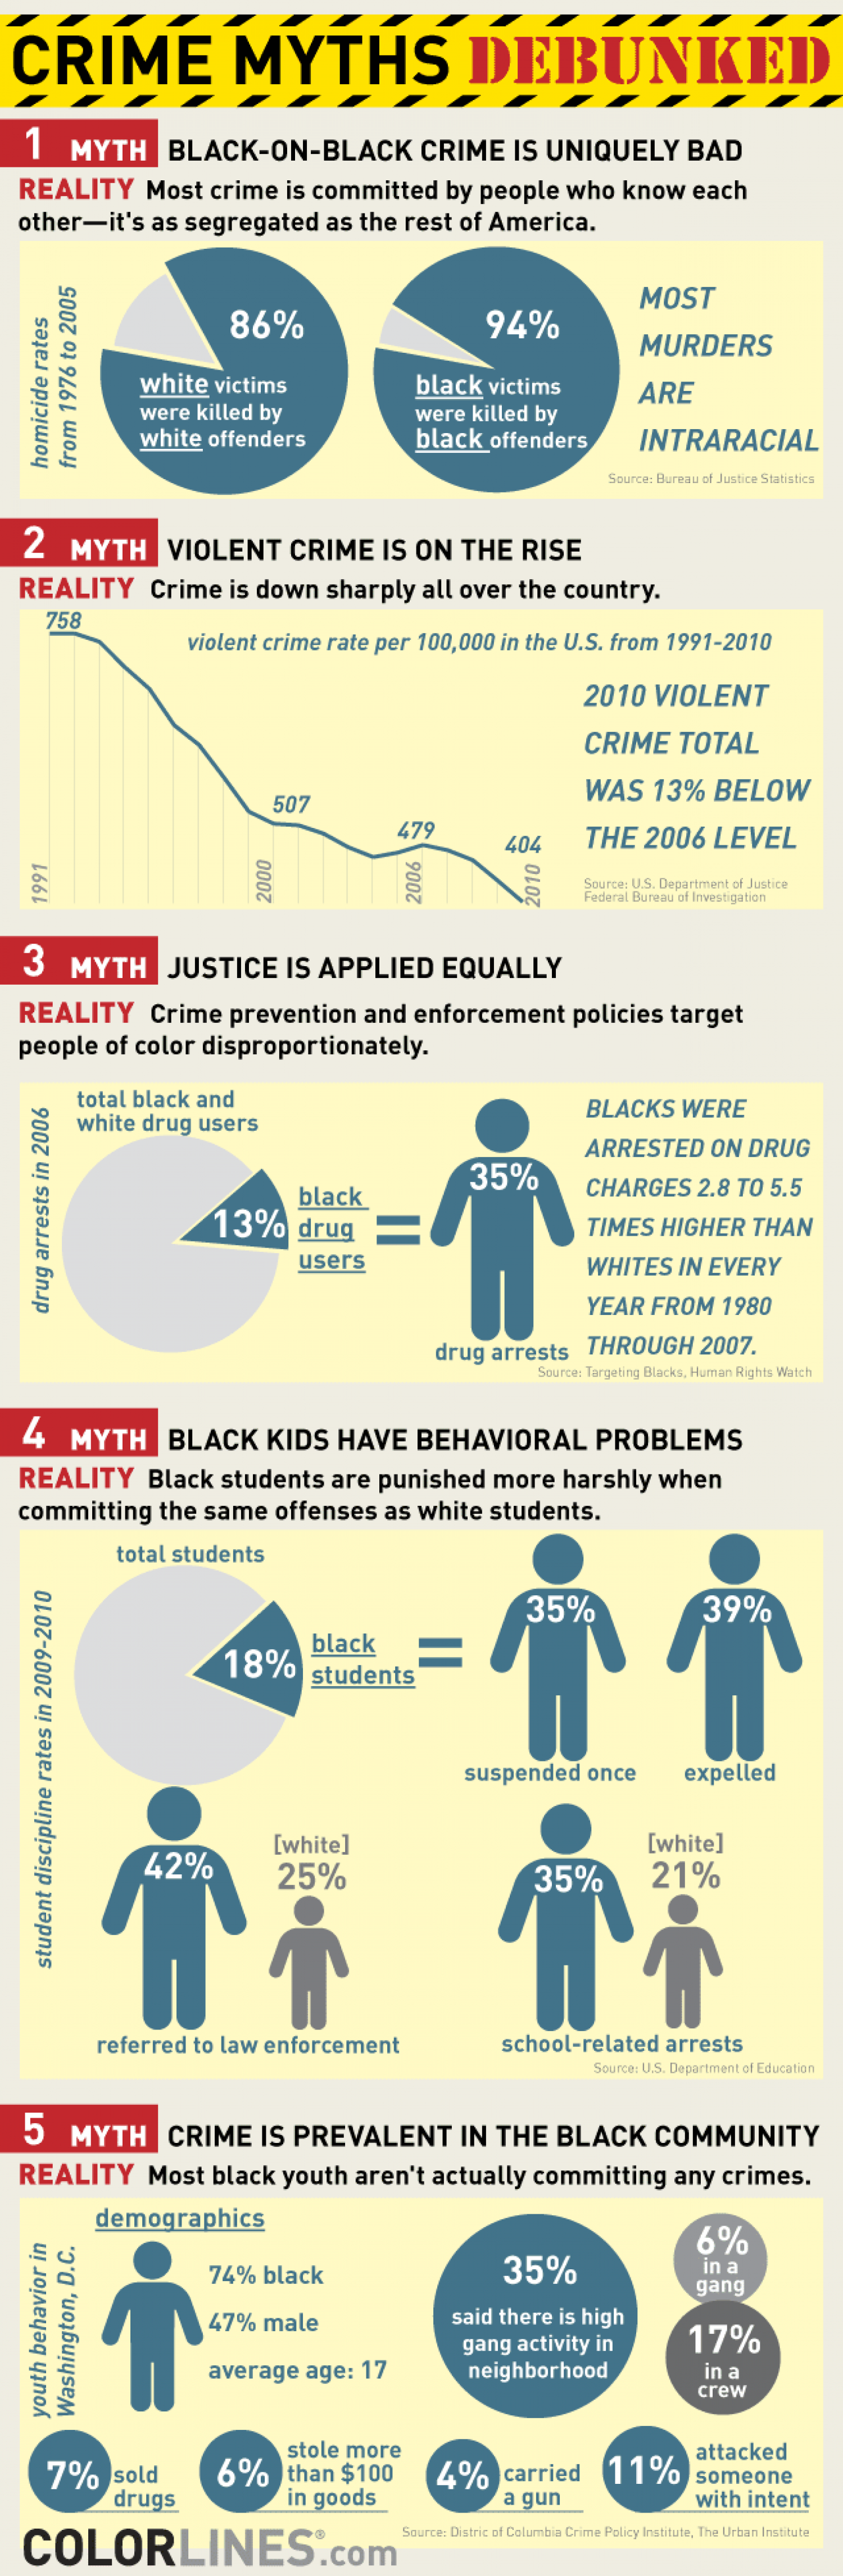 5 Myths About Crime And Race In America Infographic